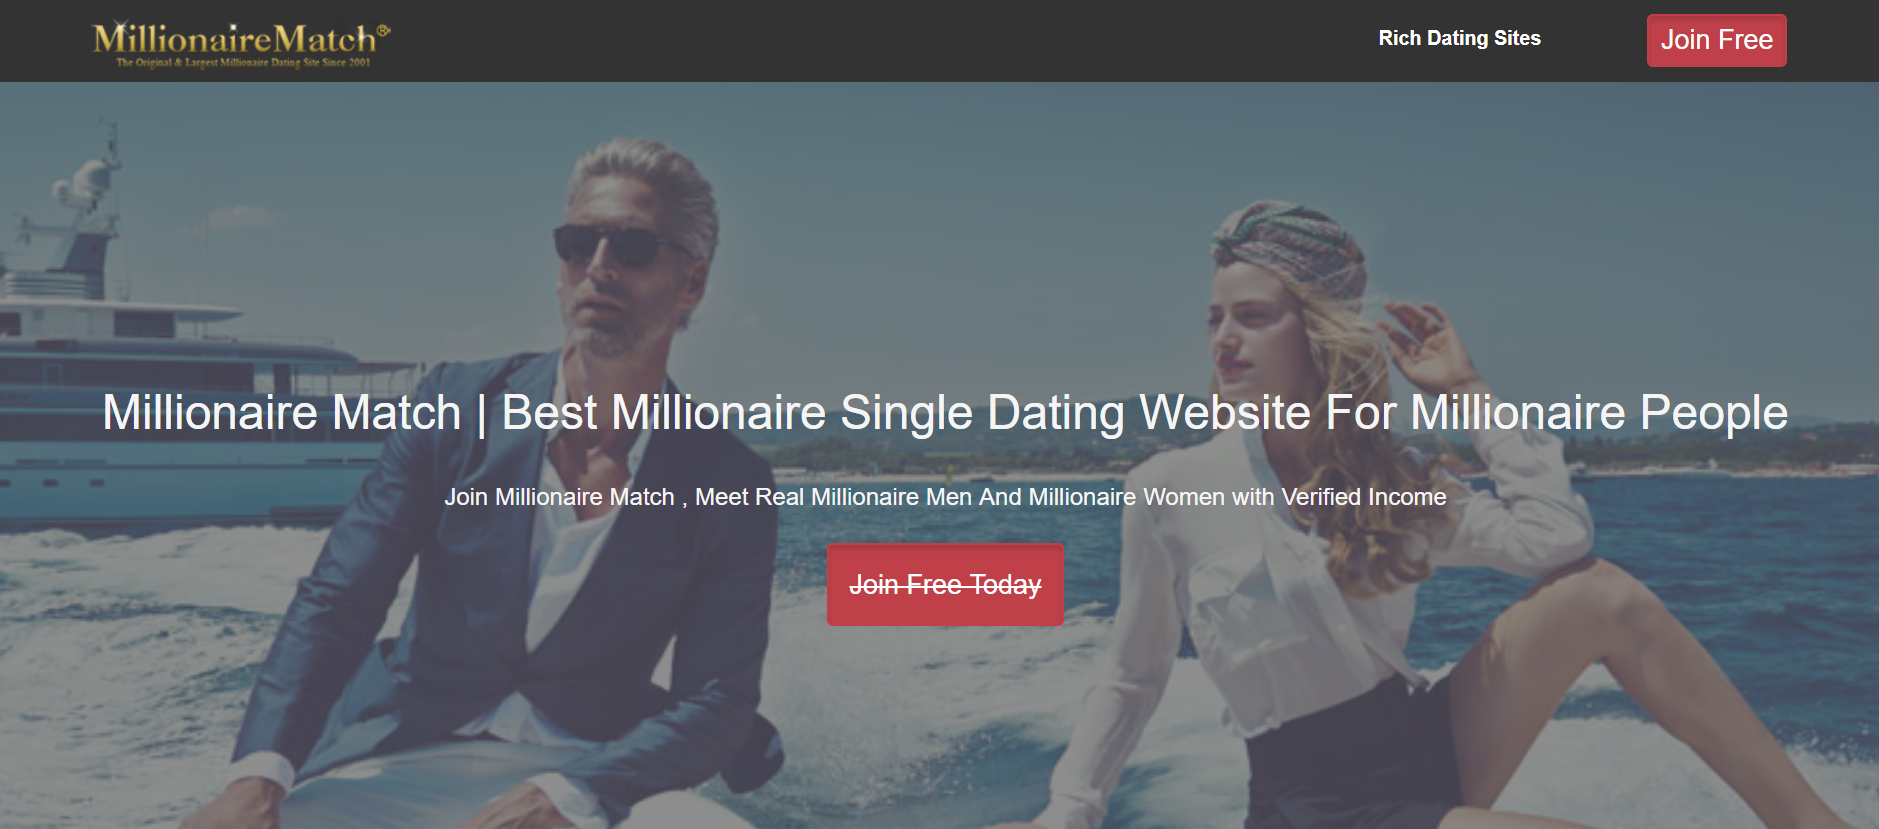 Real millionaire dating website